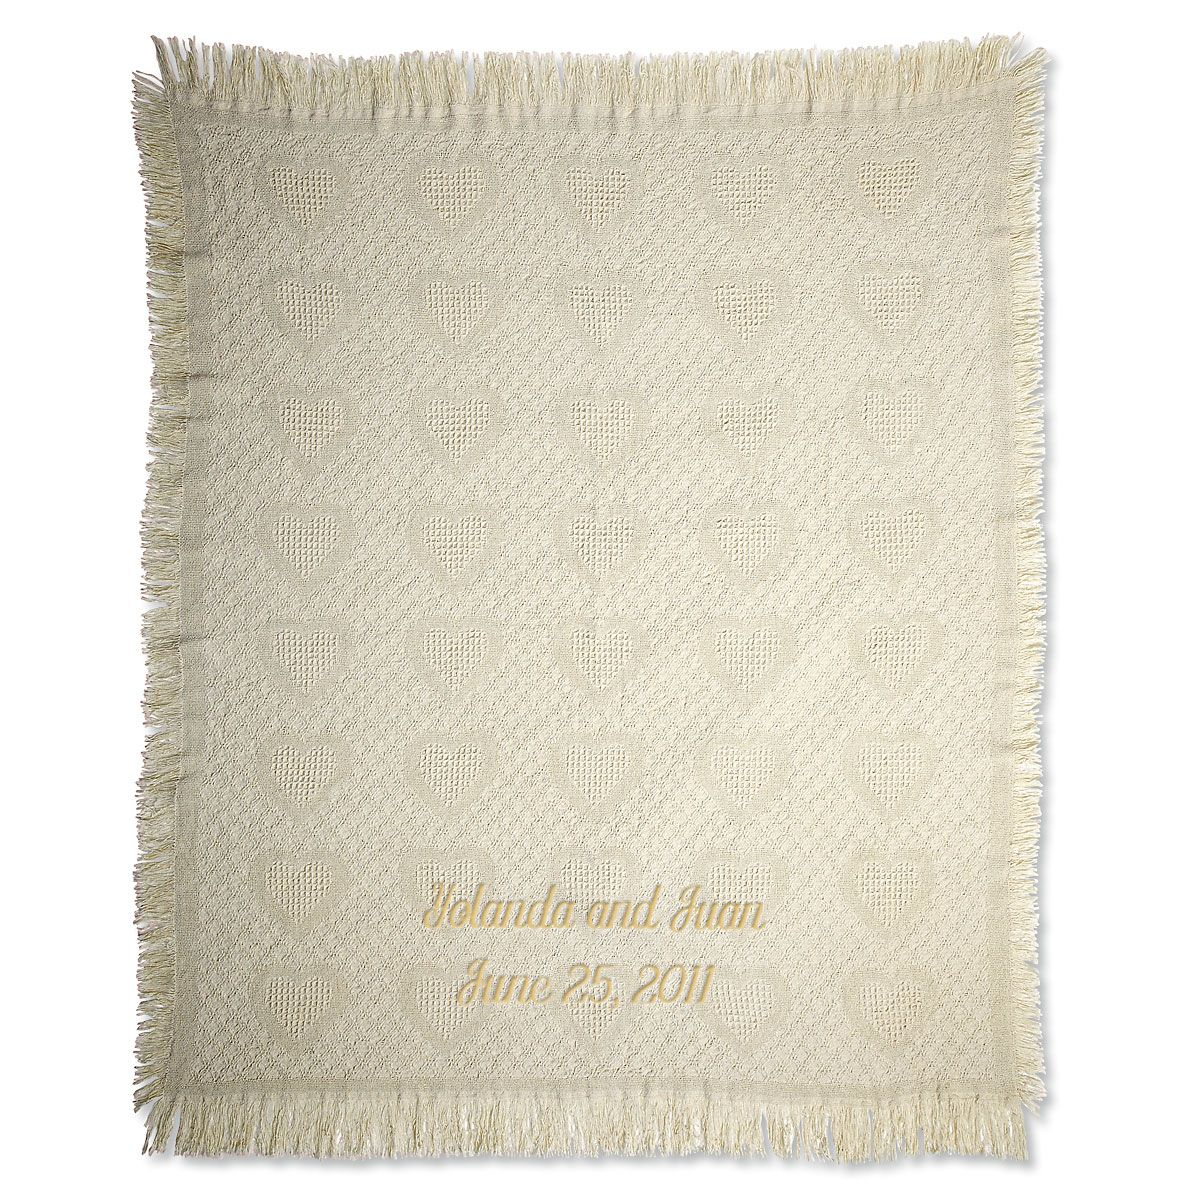 Honeycomb Heart Personalized Throw Gold Thread